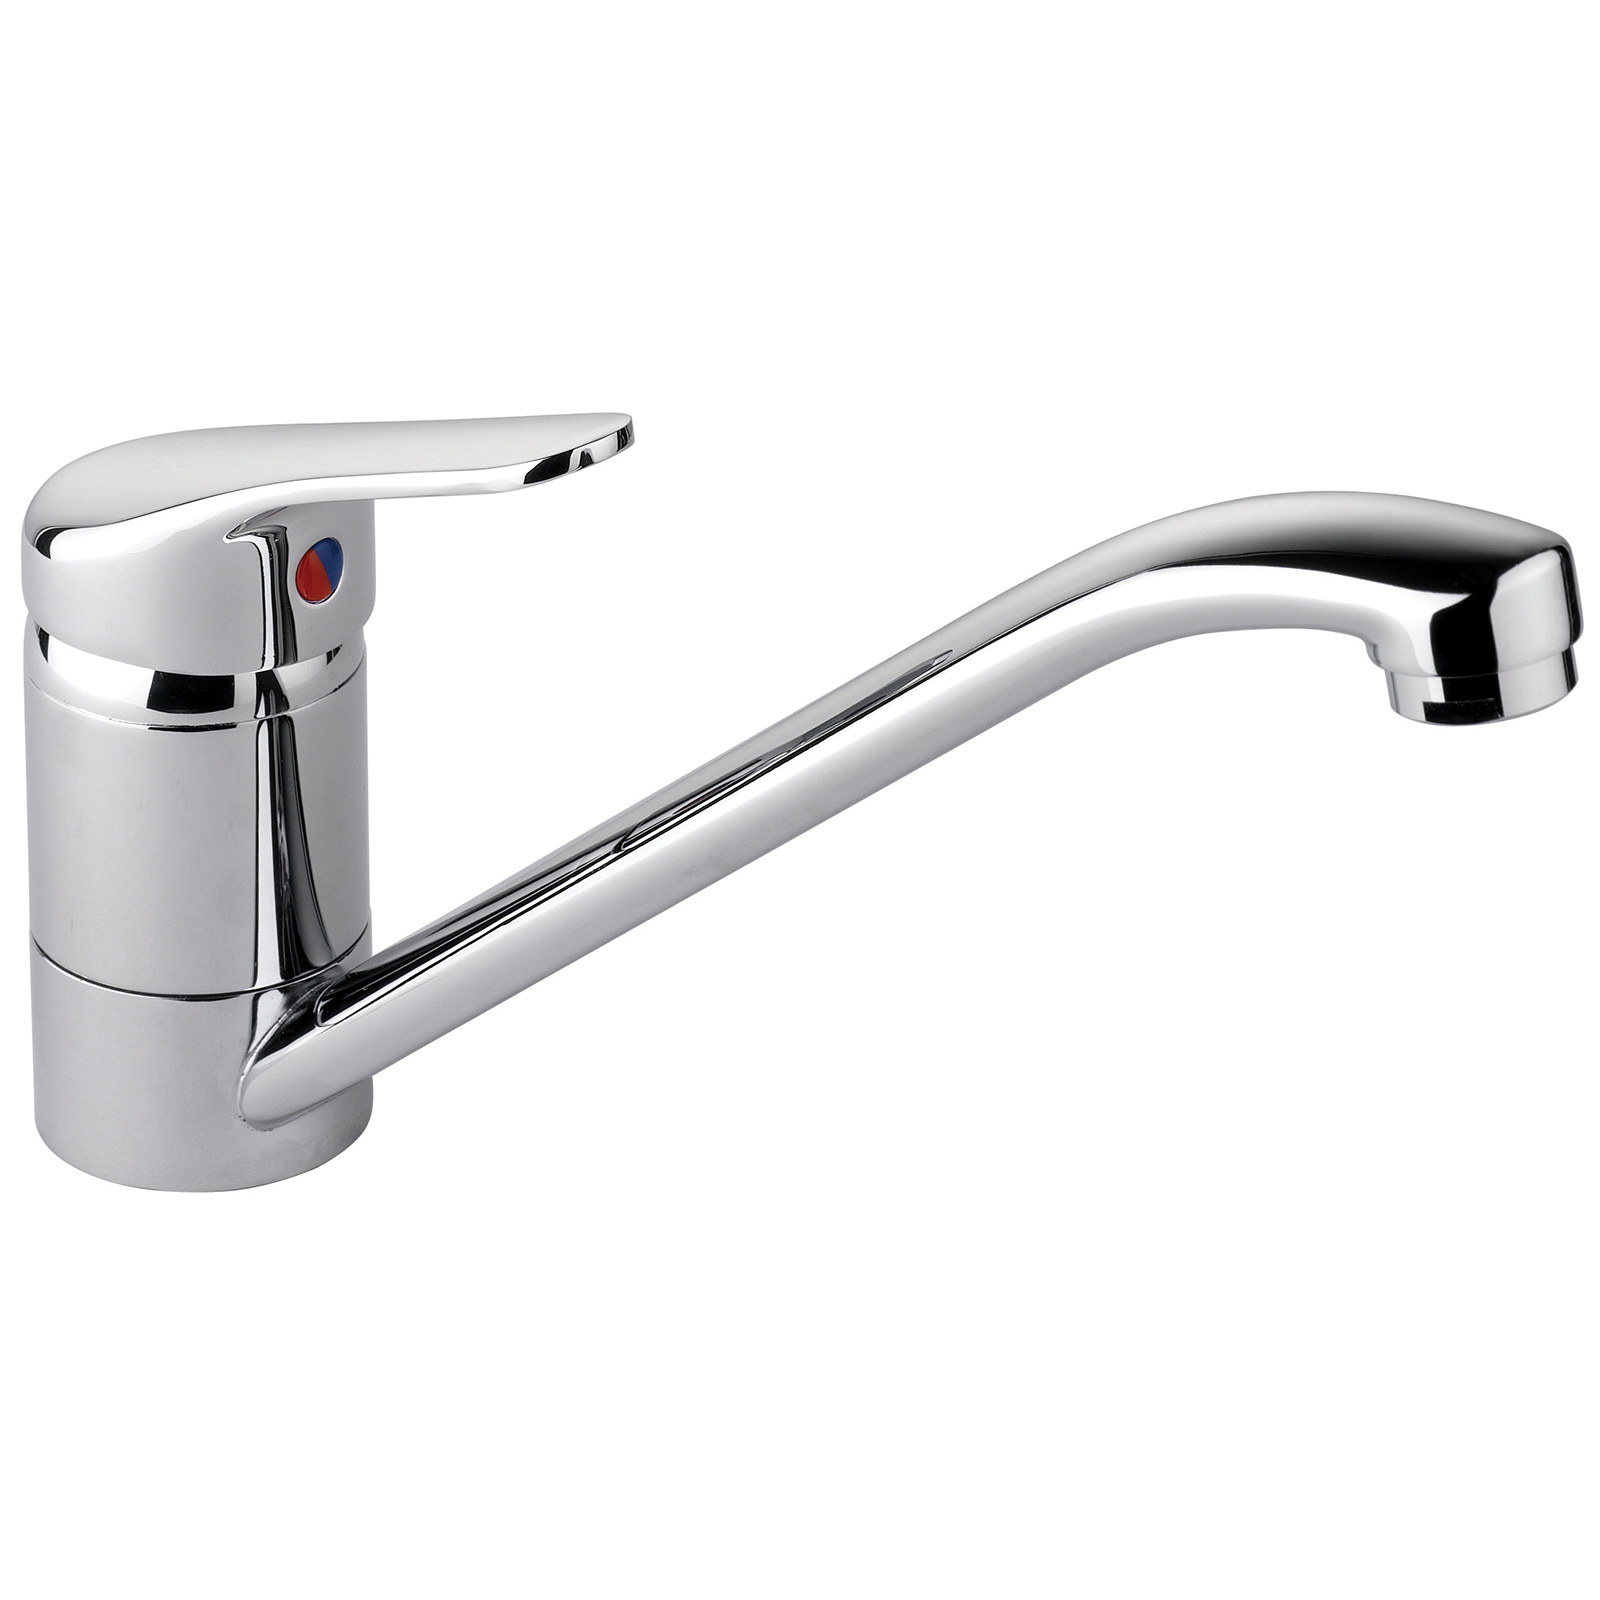 rangemaster aquaflow single lever kitchen sink mixer tap. Black Bedroom Furniture Sets. Home Design Ideas